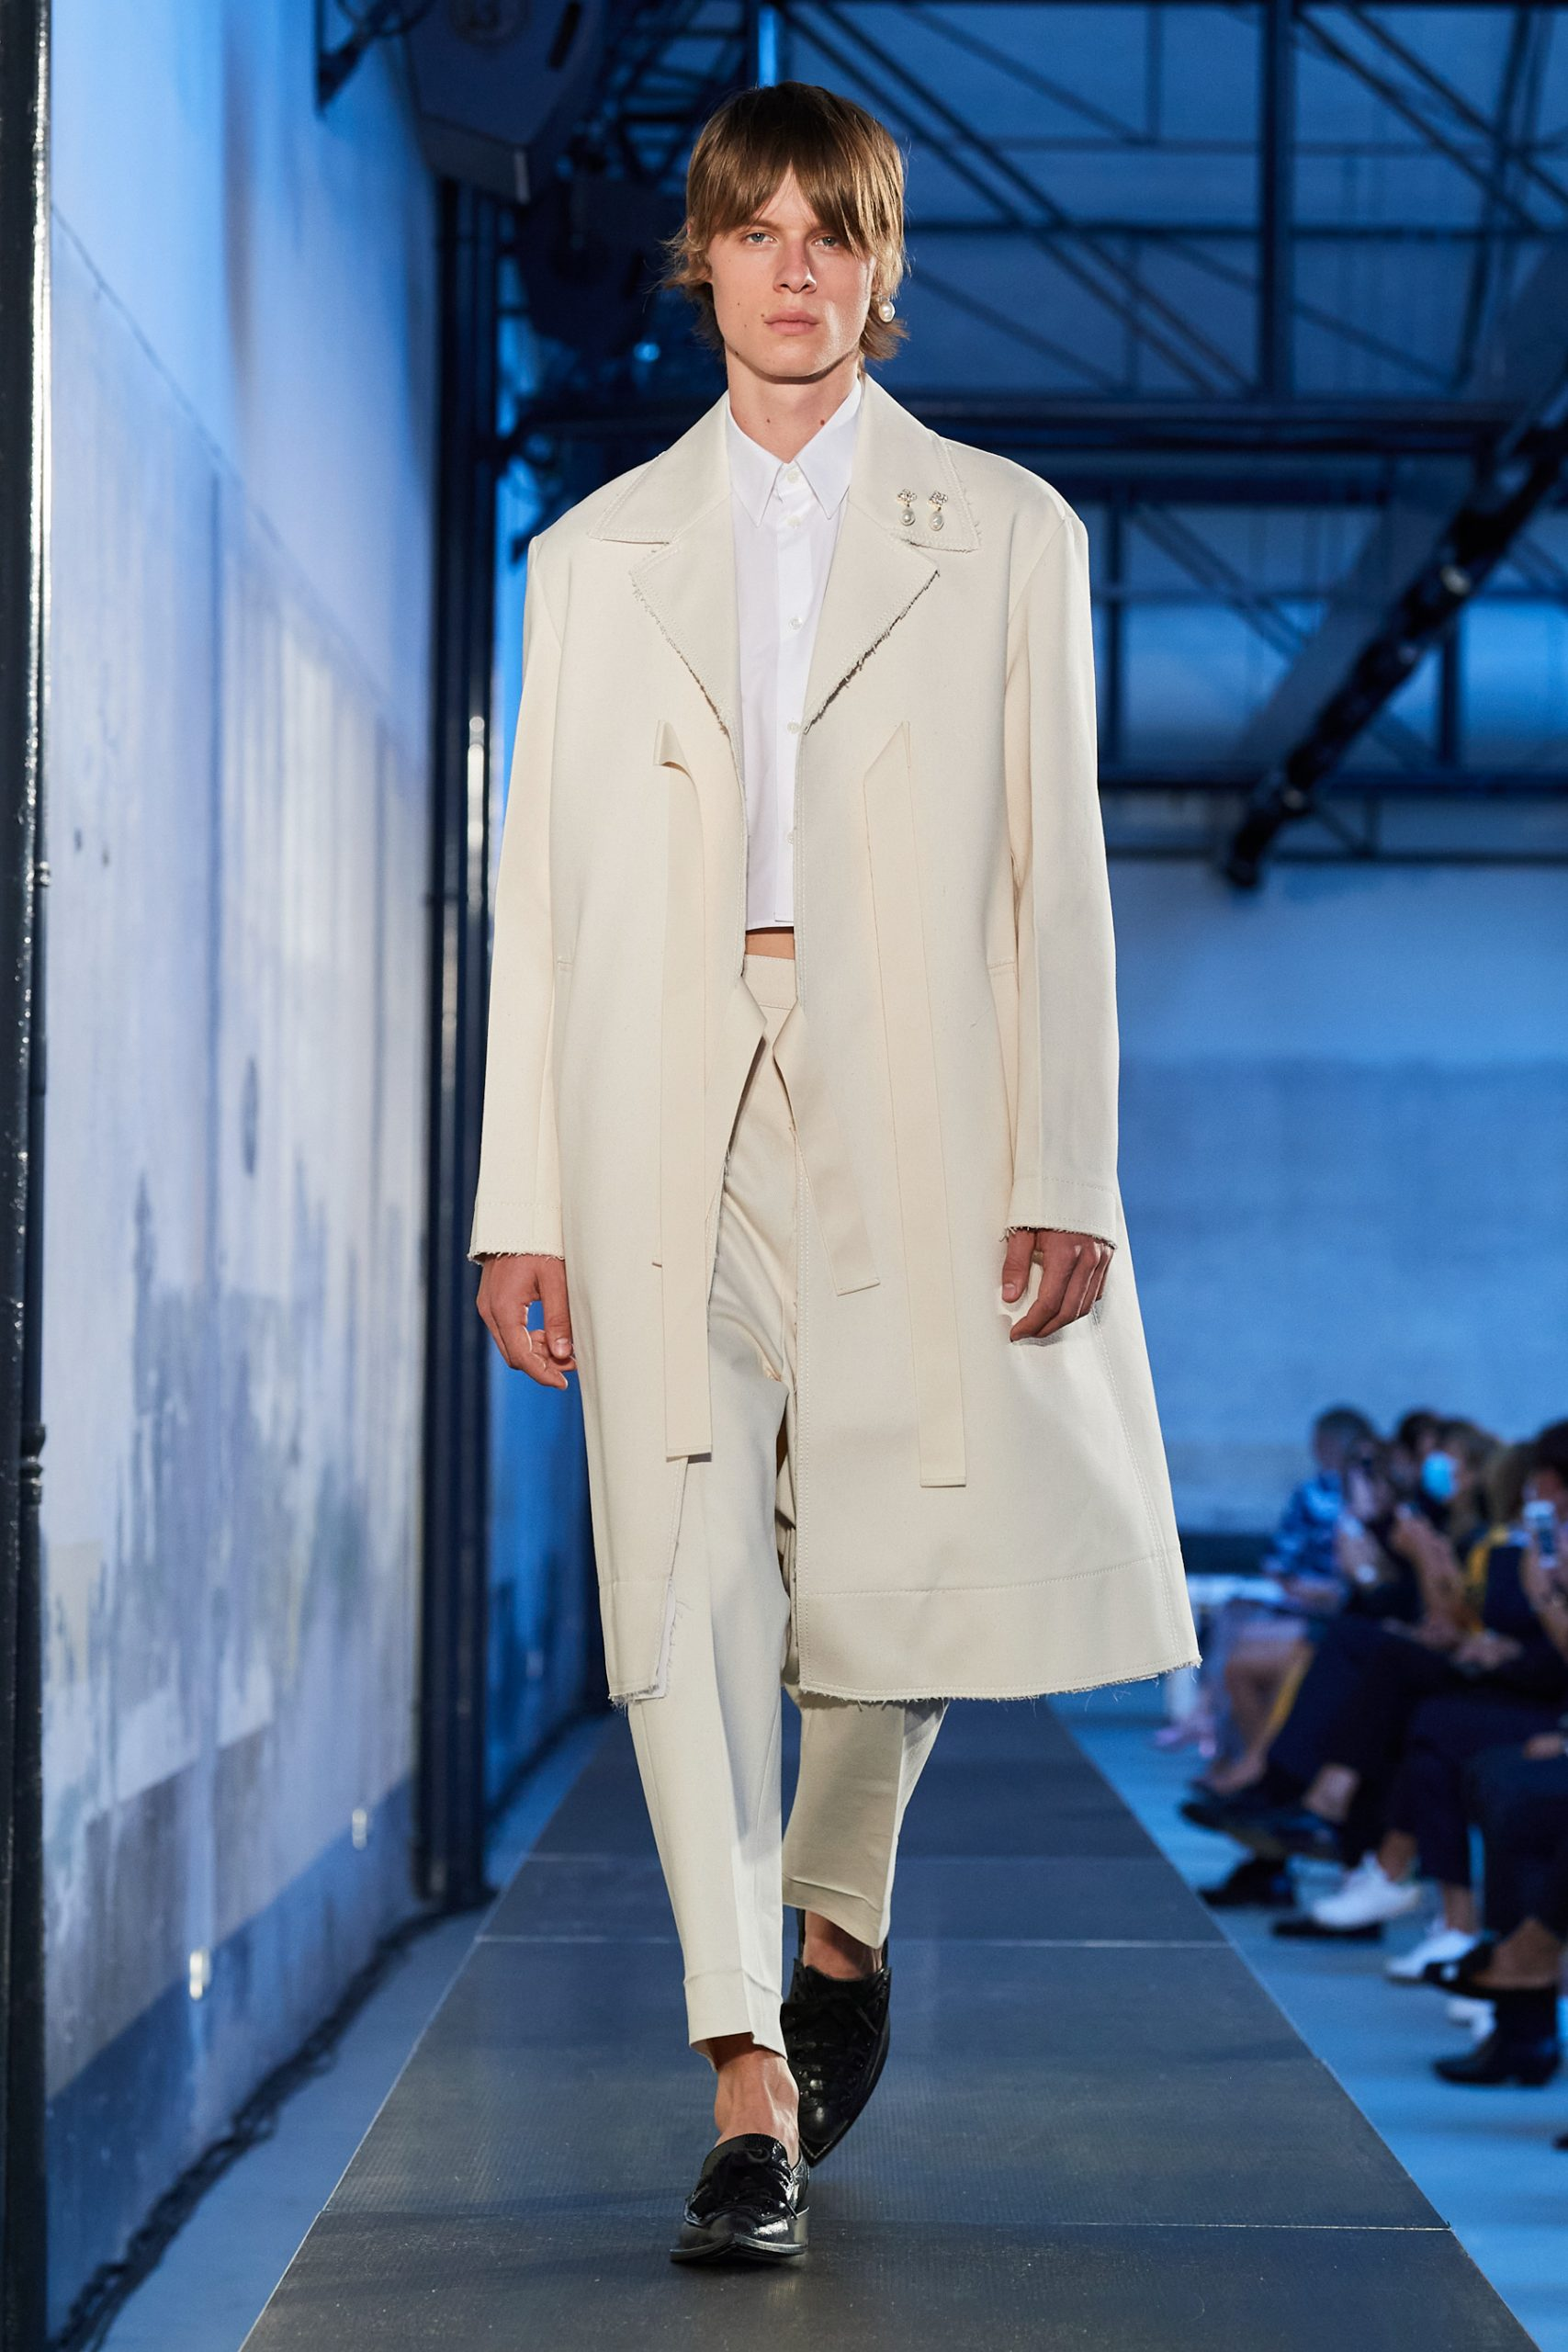 Review of Day 1 of Milan spring 2021 fashion shows